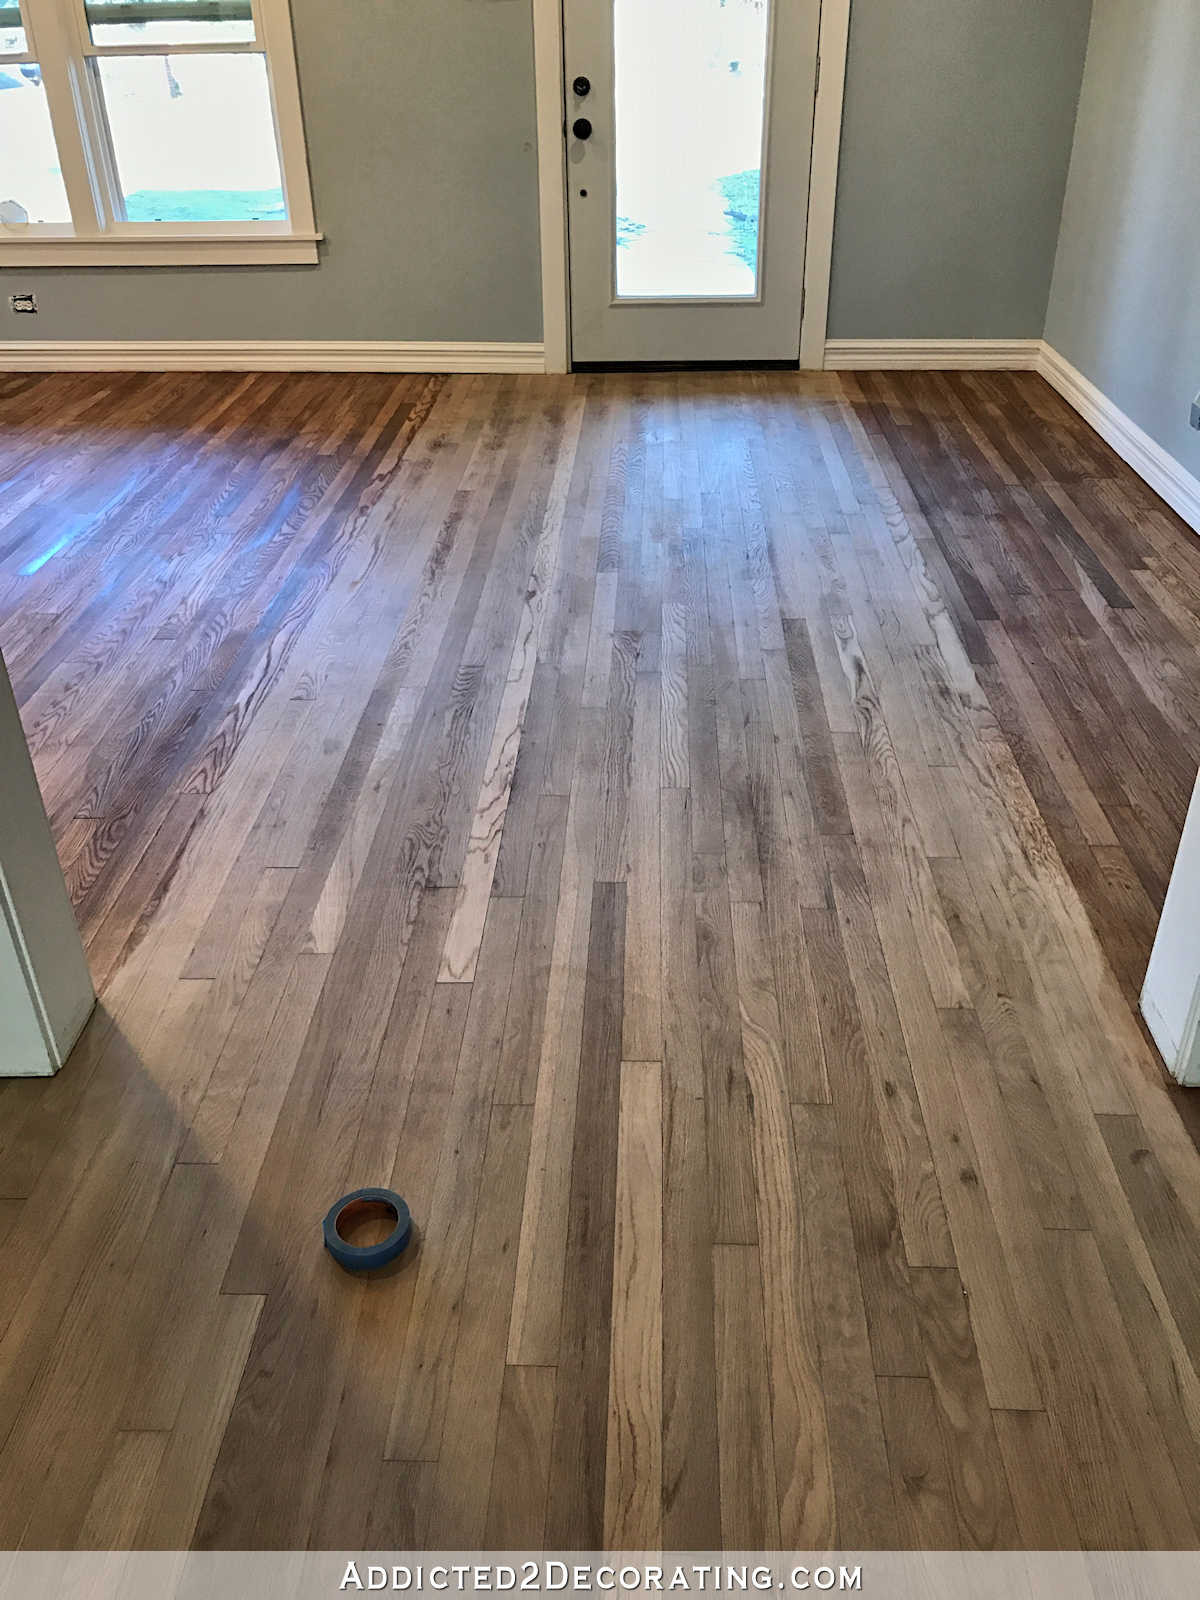 two different color hardwood floors of adventures in staining my red oak hardwood floors products process in staining red oak hardwood floors 4 entryway and living room wood conditioner